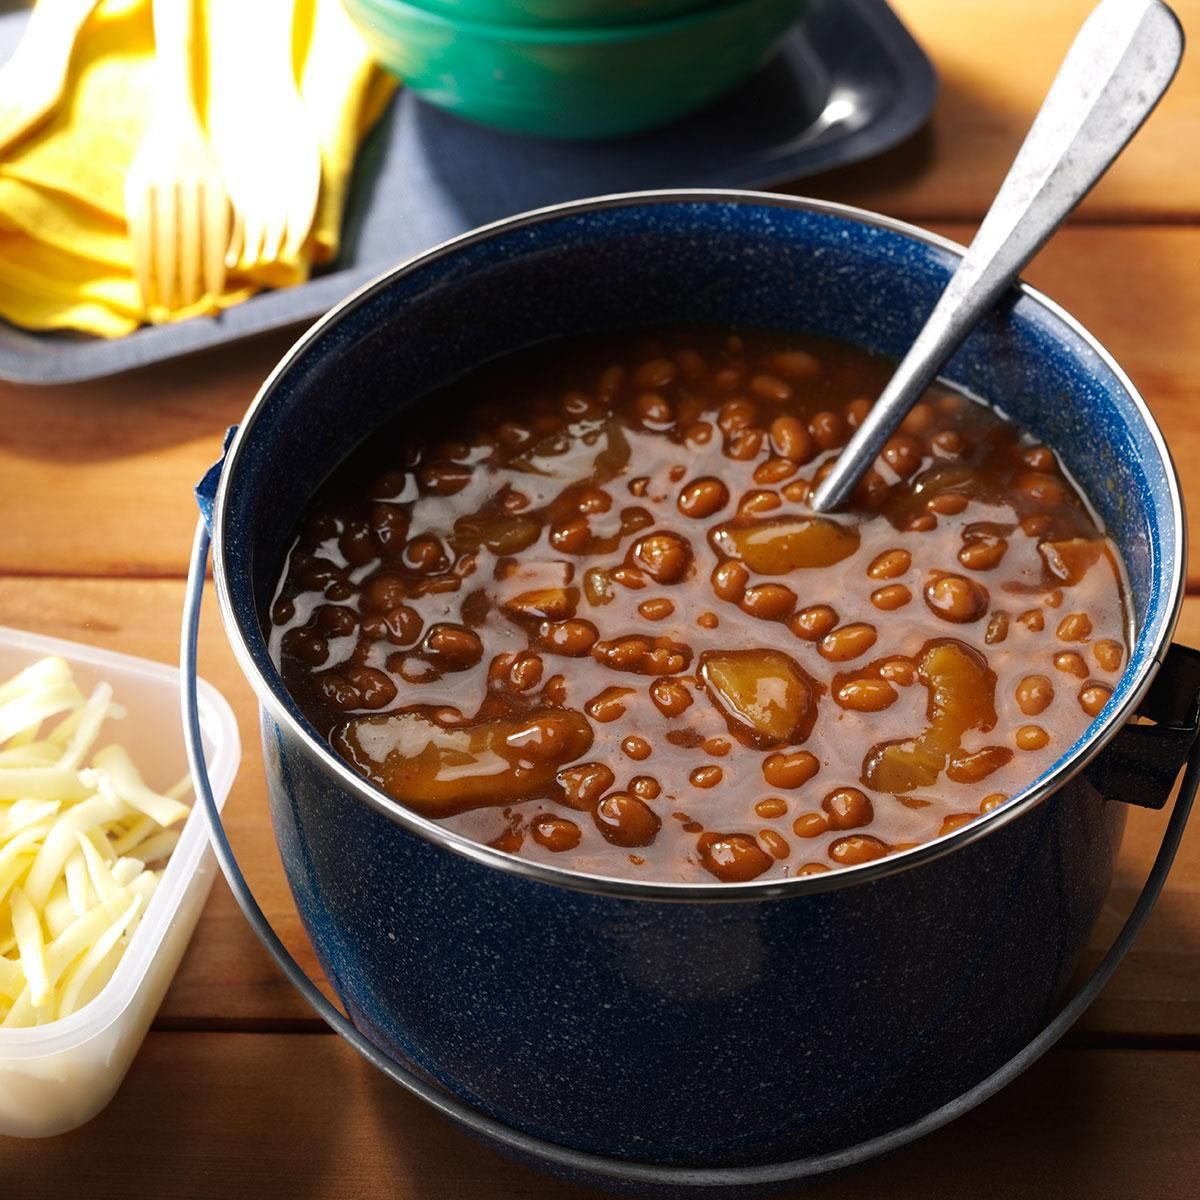 20 Easy Camping Recipes For Your Family: Root Beer Apple Baked Beans